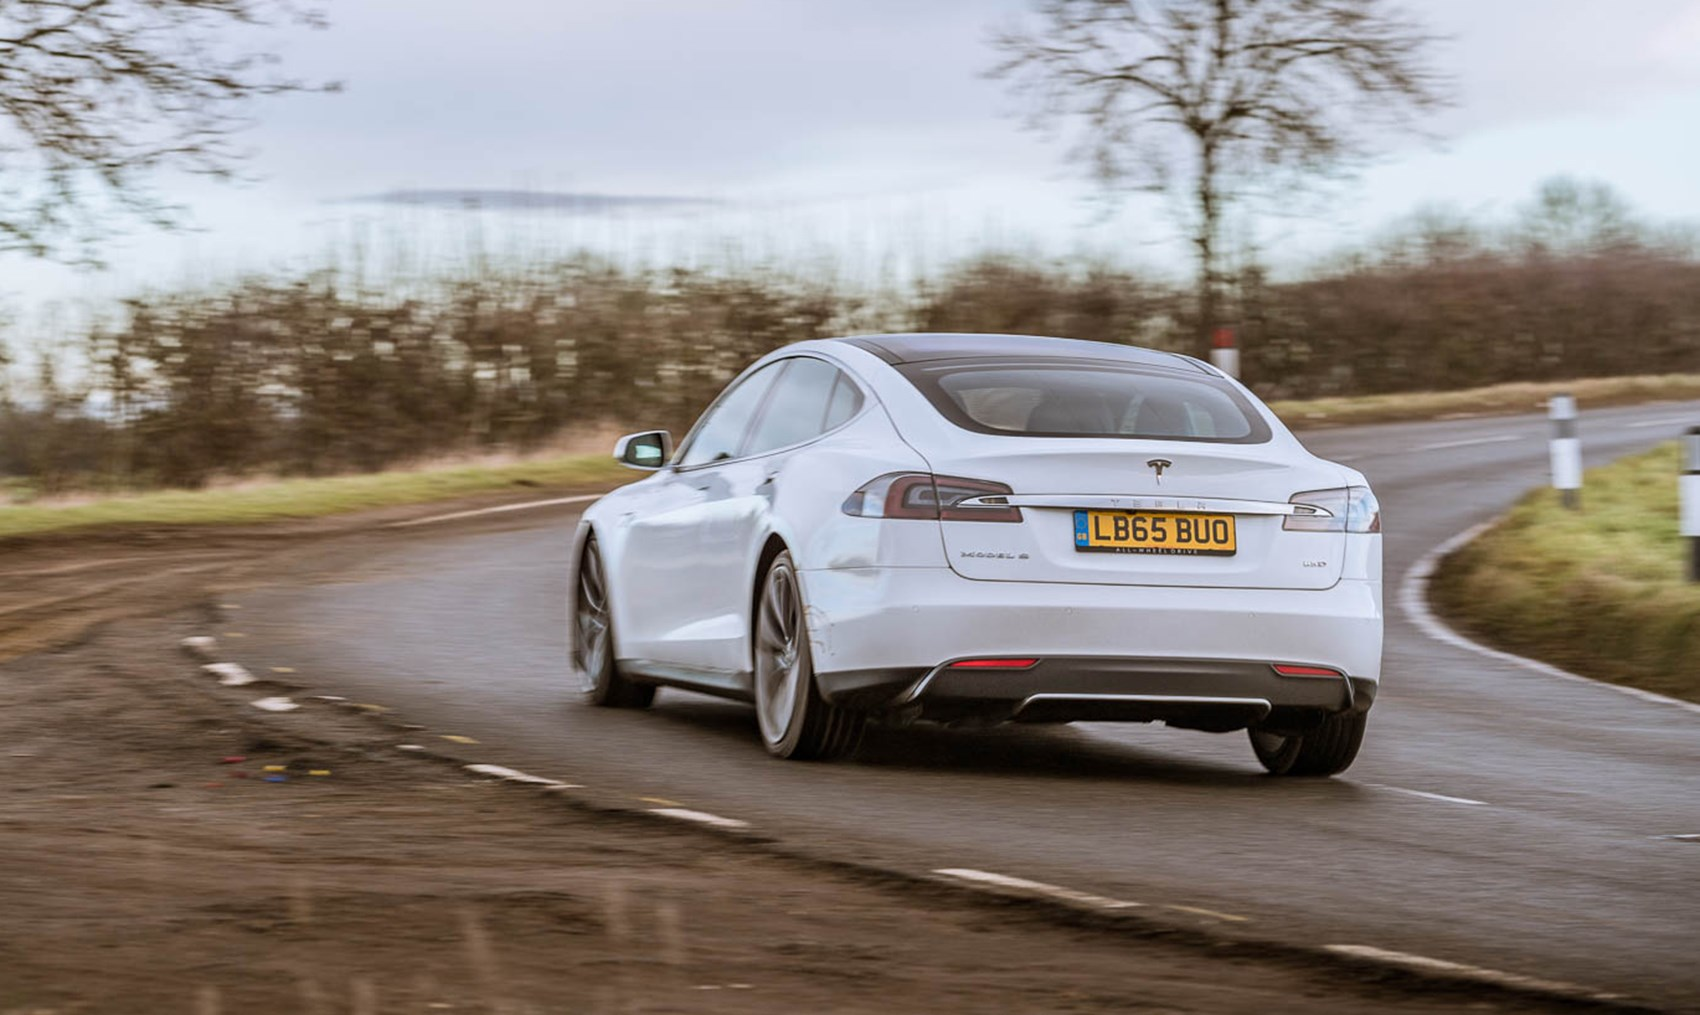 Our Tesla Model S 85d Heavy But Fun To Drive